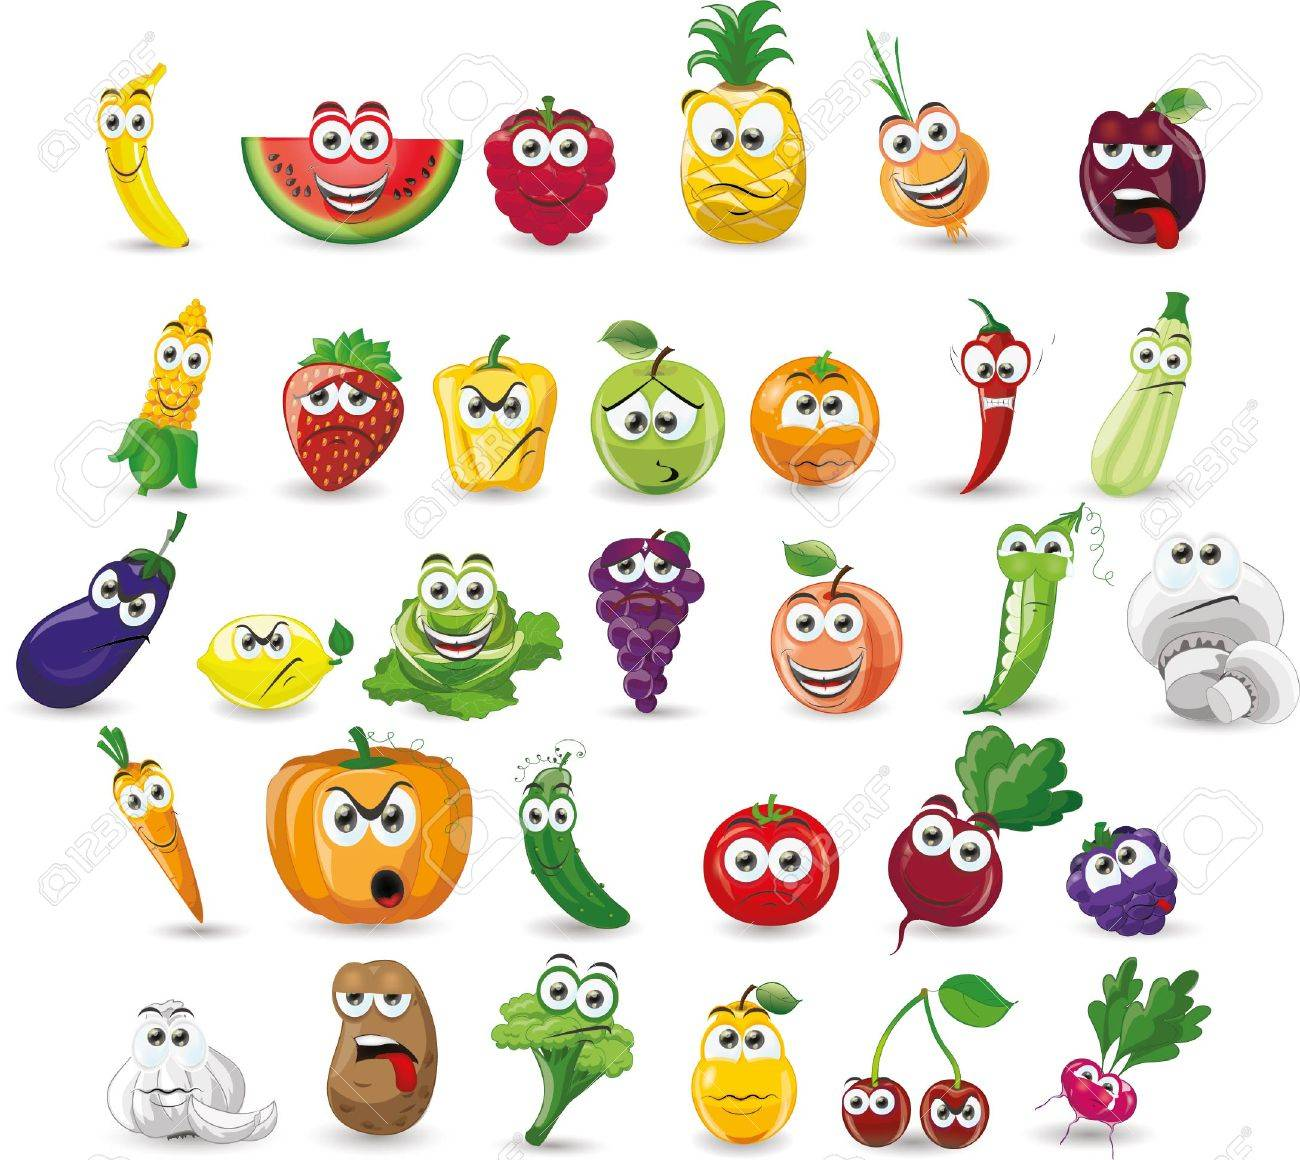 Cartoon vegetables and fruits - 50404616